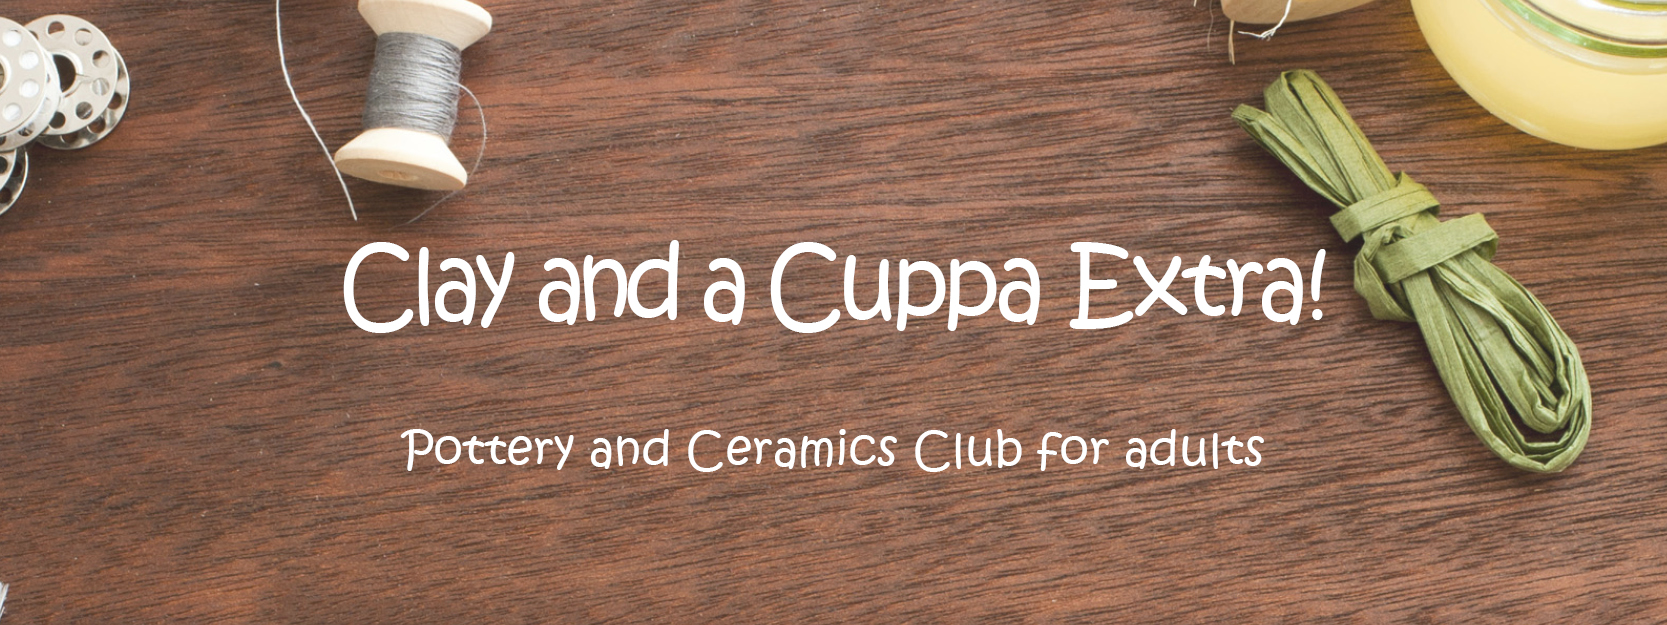 Header text image for Clay and a Cuppa